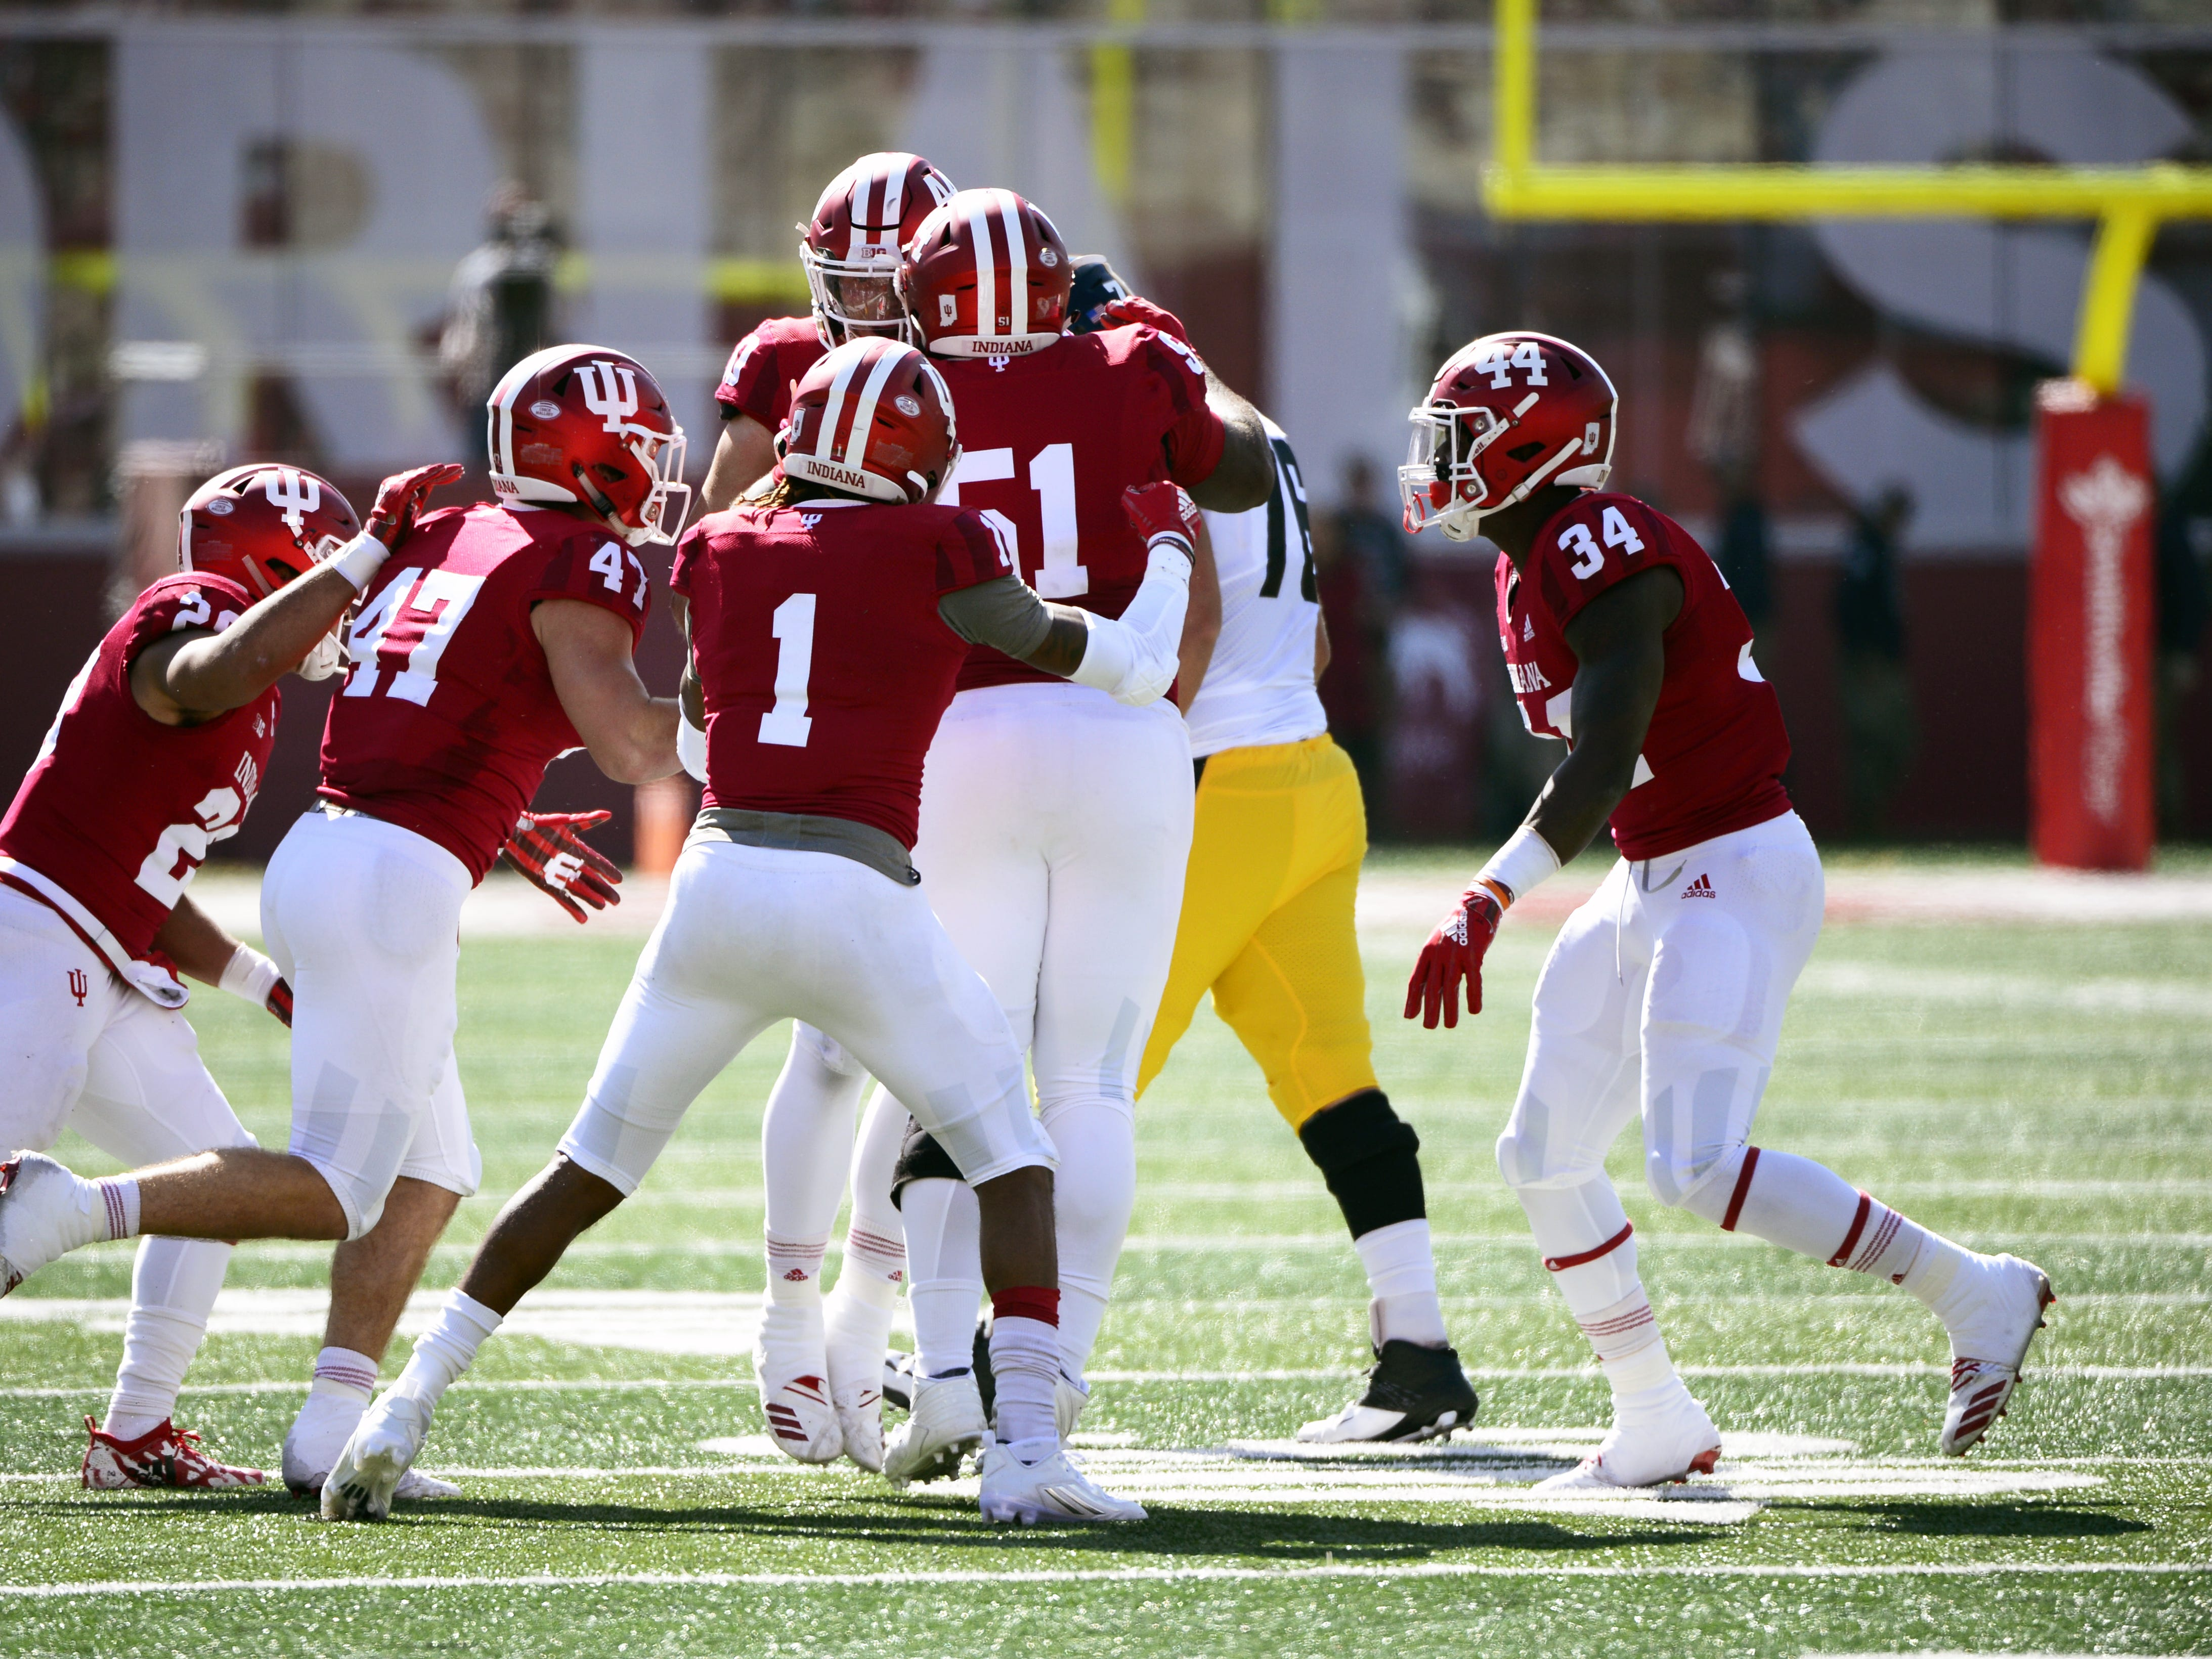 The Indiana Hoosiers celebrate after an interception by linebacker Thomas Allen (10) against Iowa at Memorial Stadium in Bloomington, Ind., on Saturday, Oct. 13, 2018.